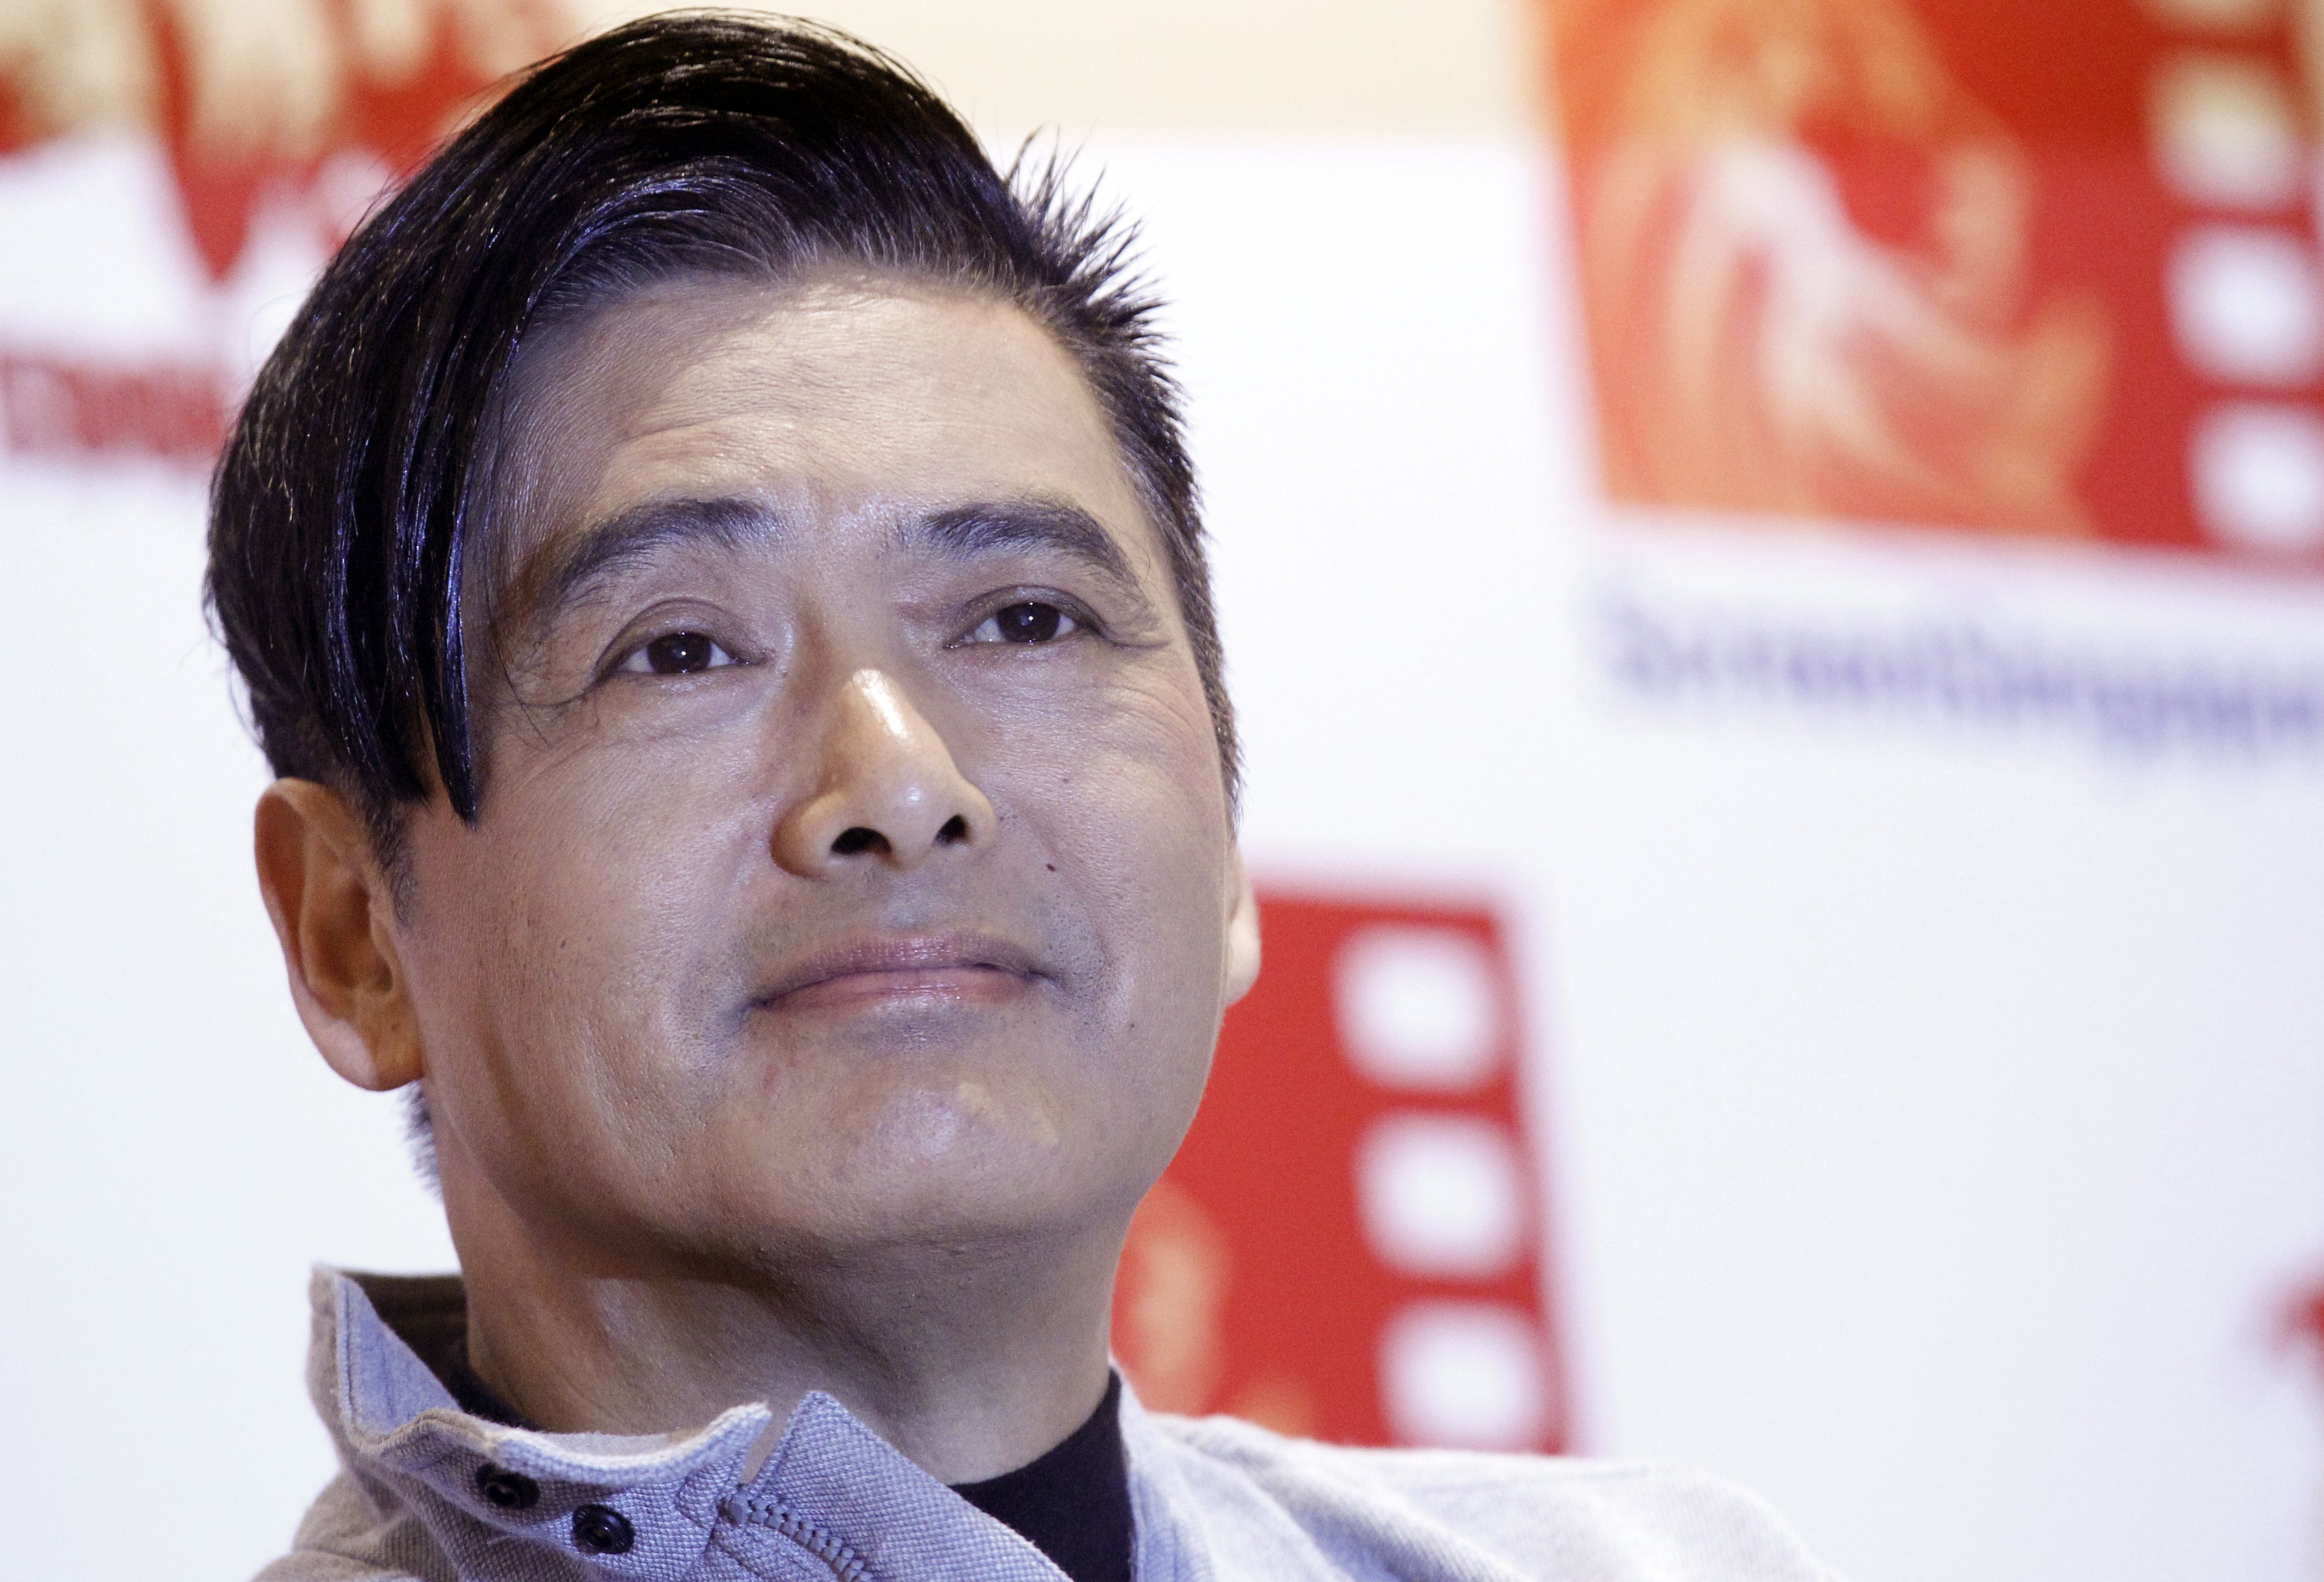 'Crouching Tiger, Hidden Dragon' Star Chow Yun-fat Plans to Give His Entire $714M Fortune to Charity